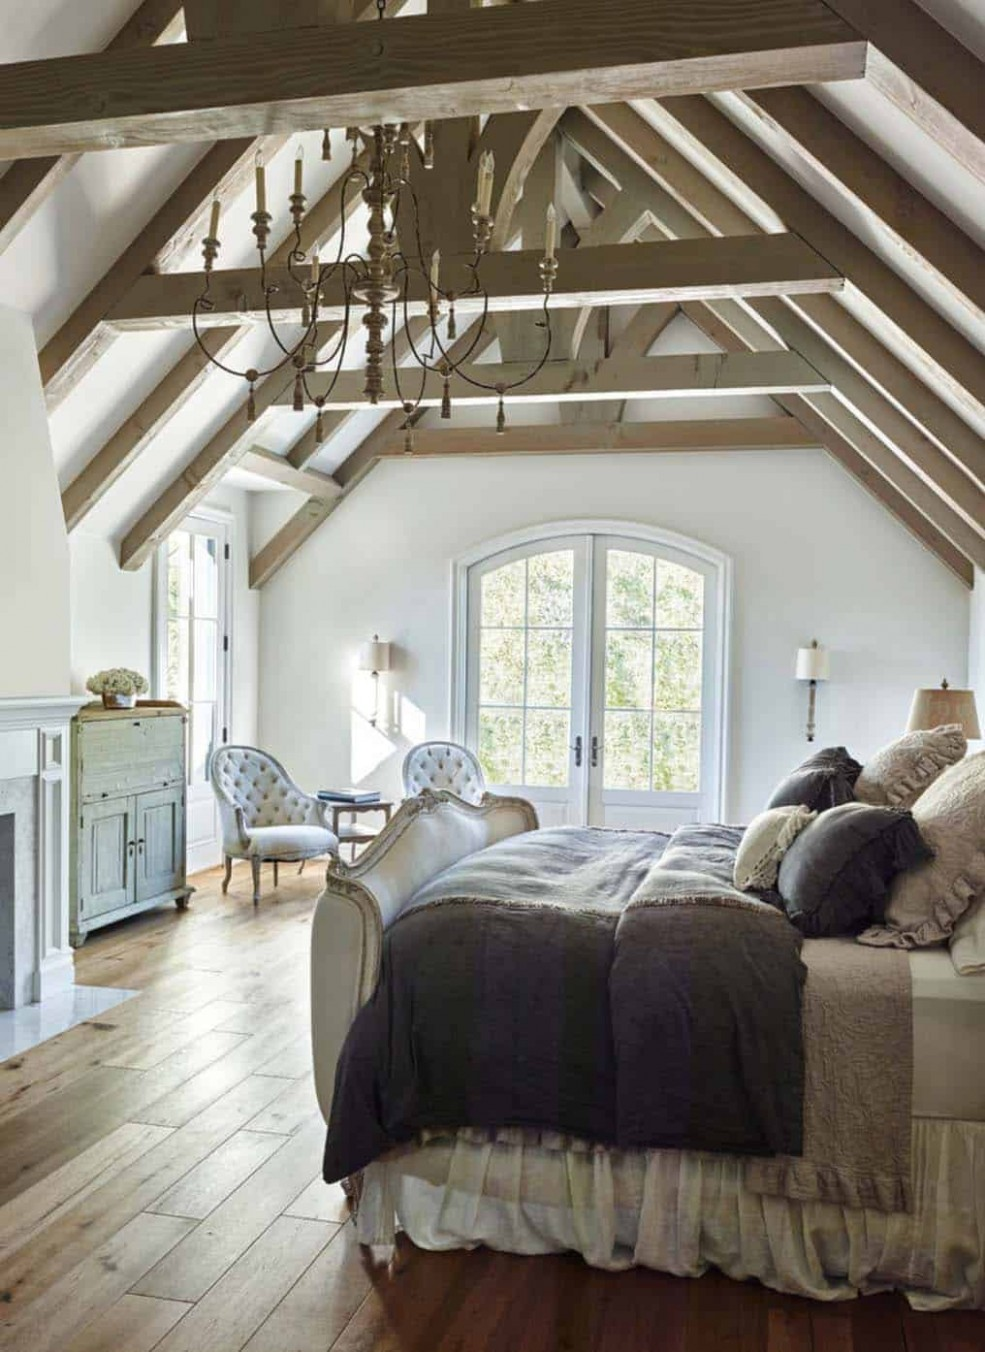 12 Stunning master bedroom retreats with vaulted ceilings - Bedroom Ideas High Ceilings